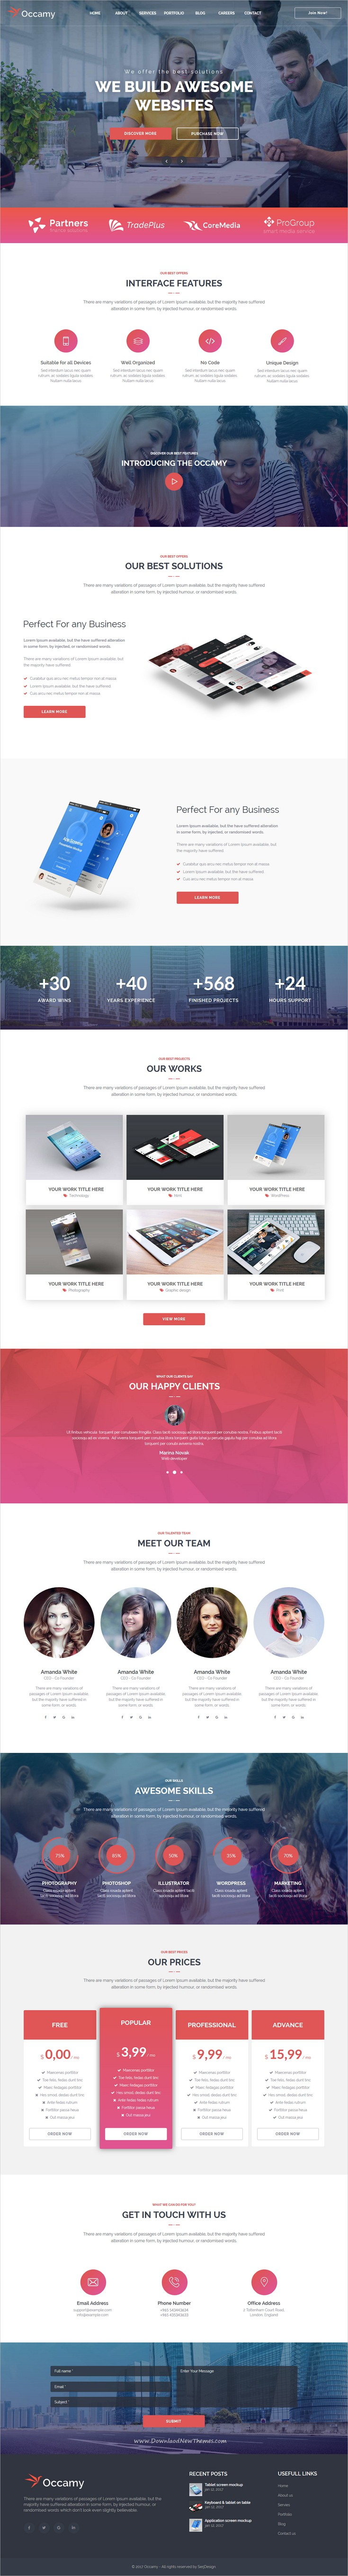 Occamy is clean and modern design multipurpose responsive adobe